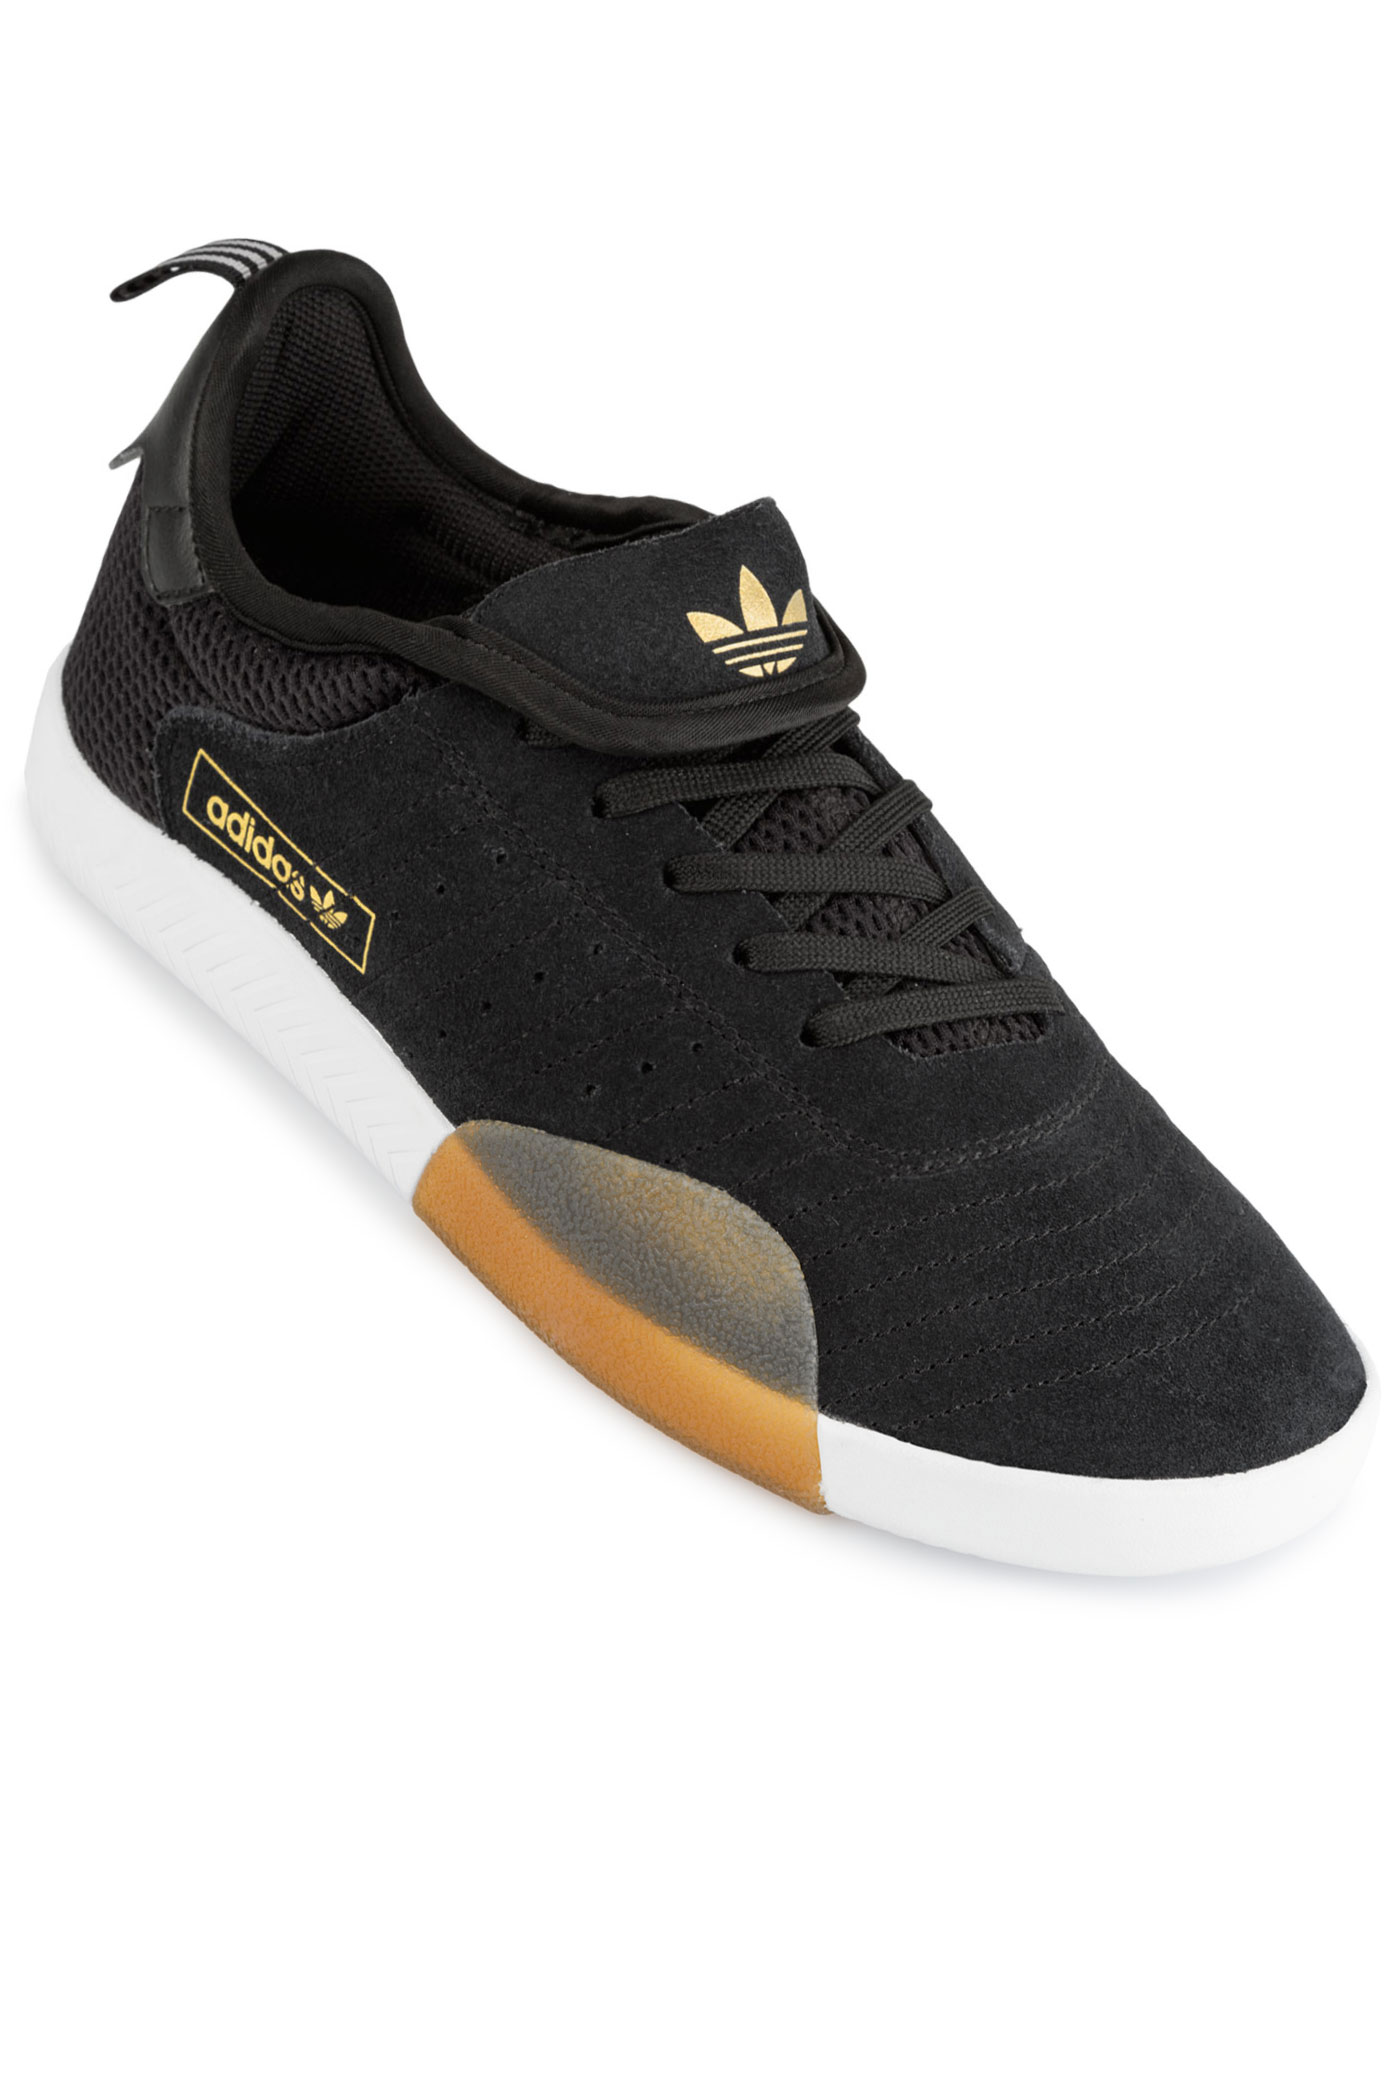 Light Black Granite 3st 003 Adidas Skateboarding Chaussurecore E9IHW2YD